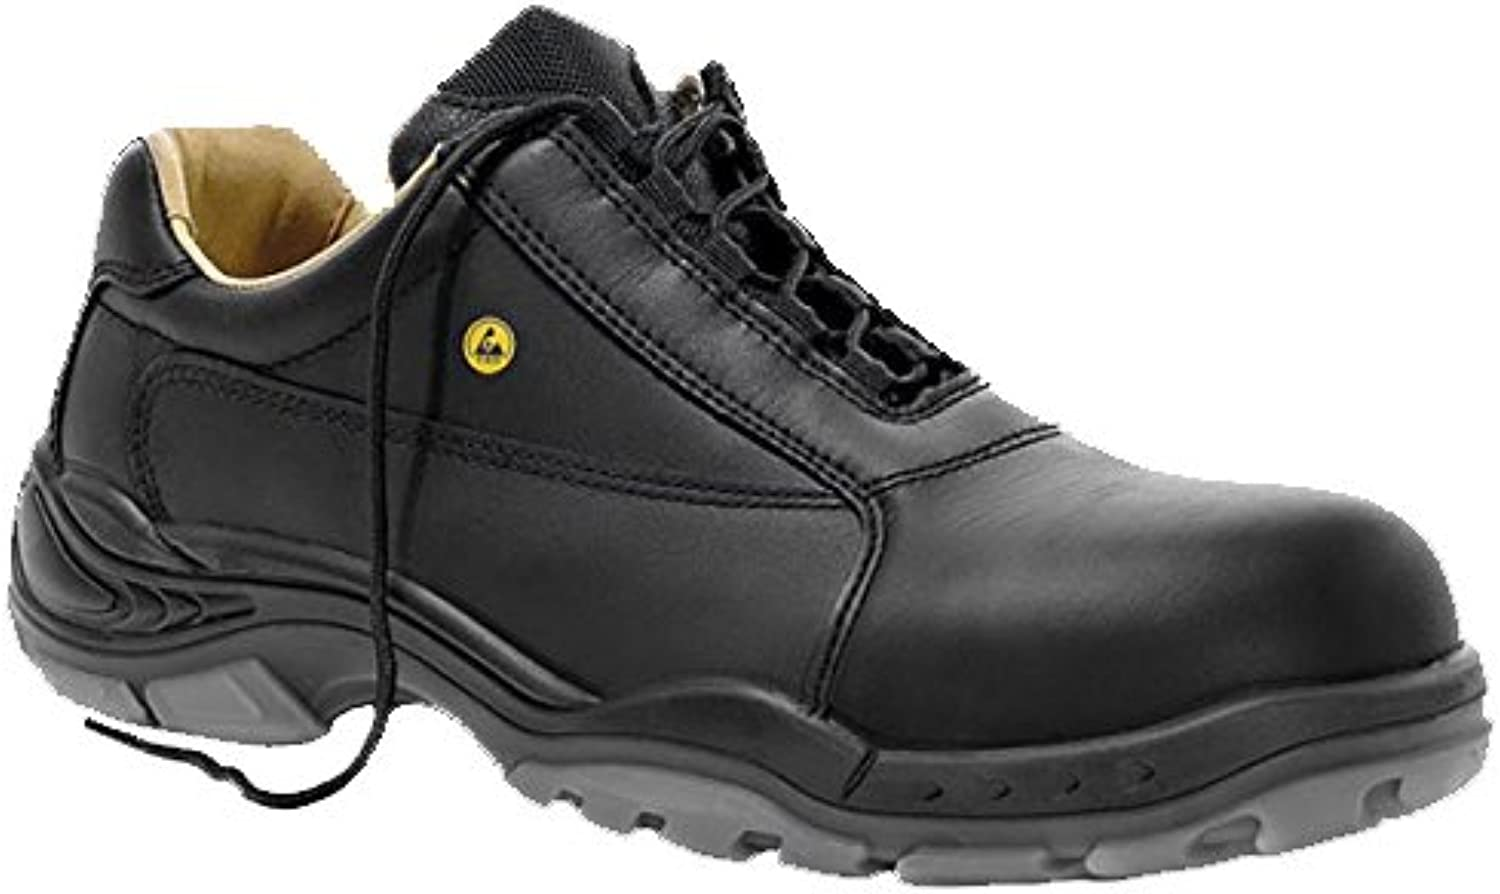 Elten 1726951-37 Size 37 ESD S3 Ronny  Safety shoes - Multi-Colour